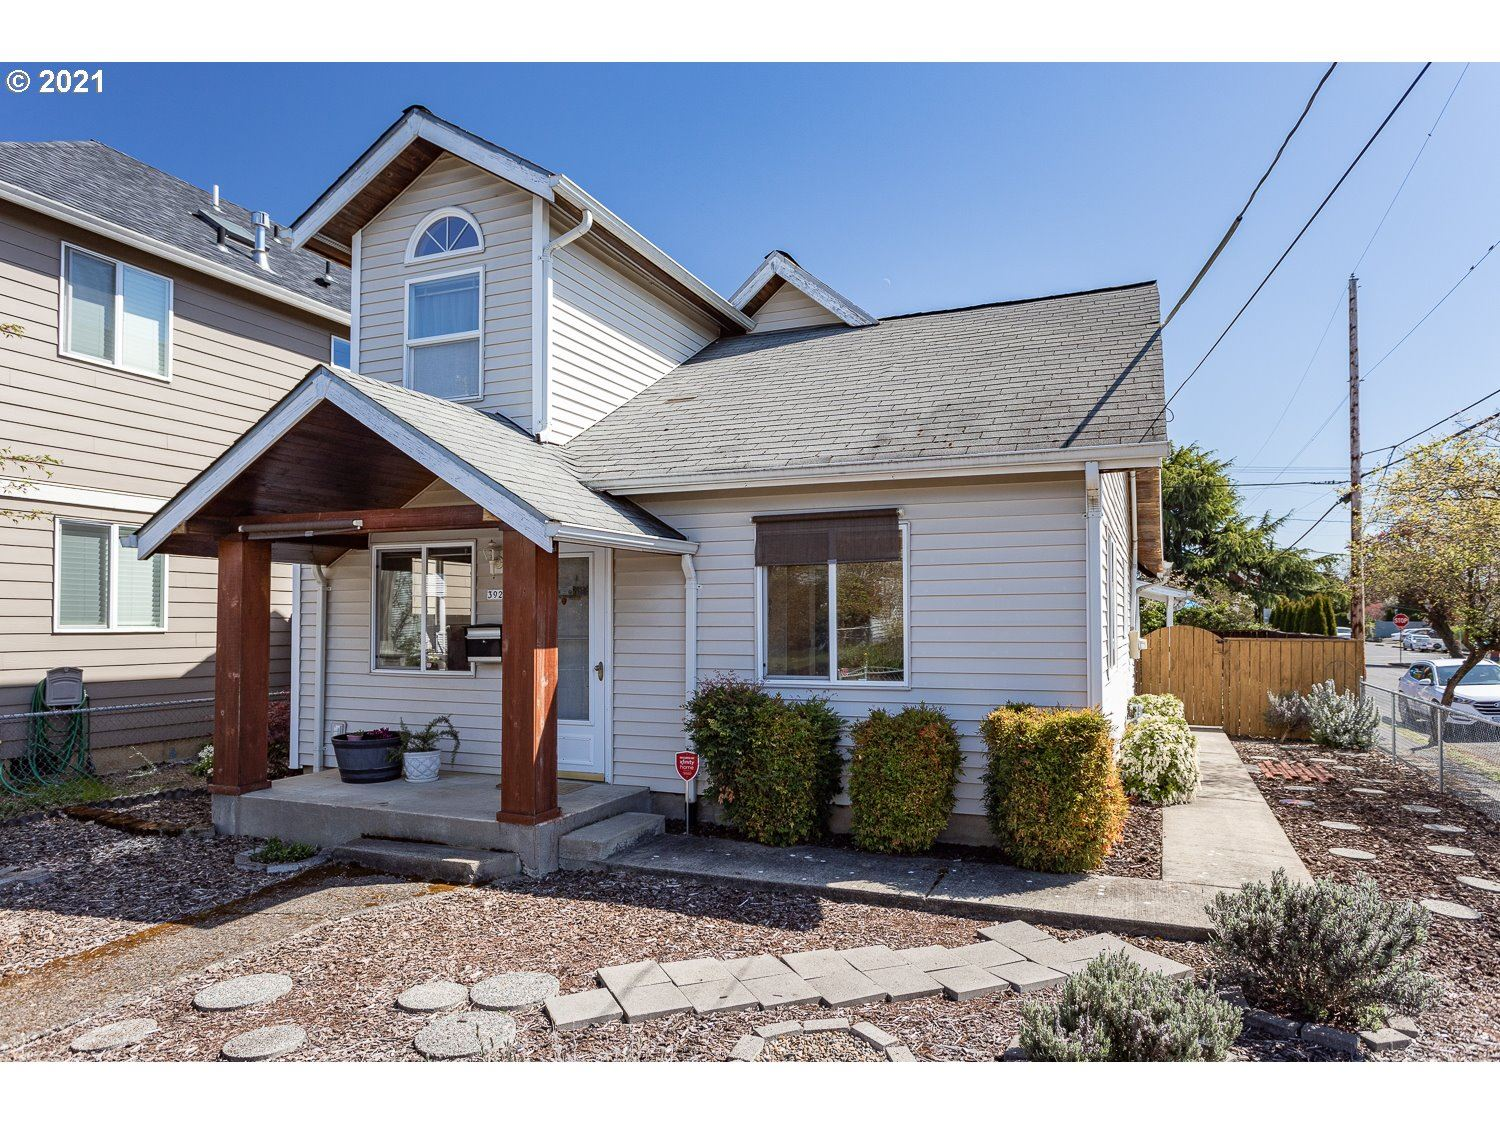 3928 SE 66TH AVE, Portland, OR 97206 - MLS#: 21482017